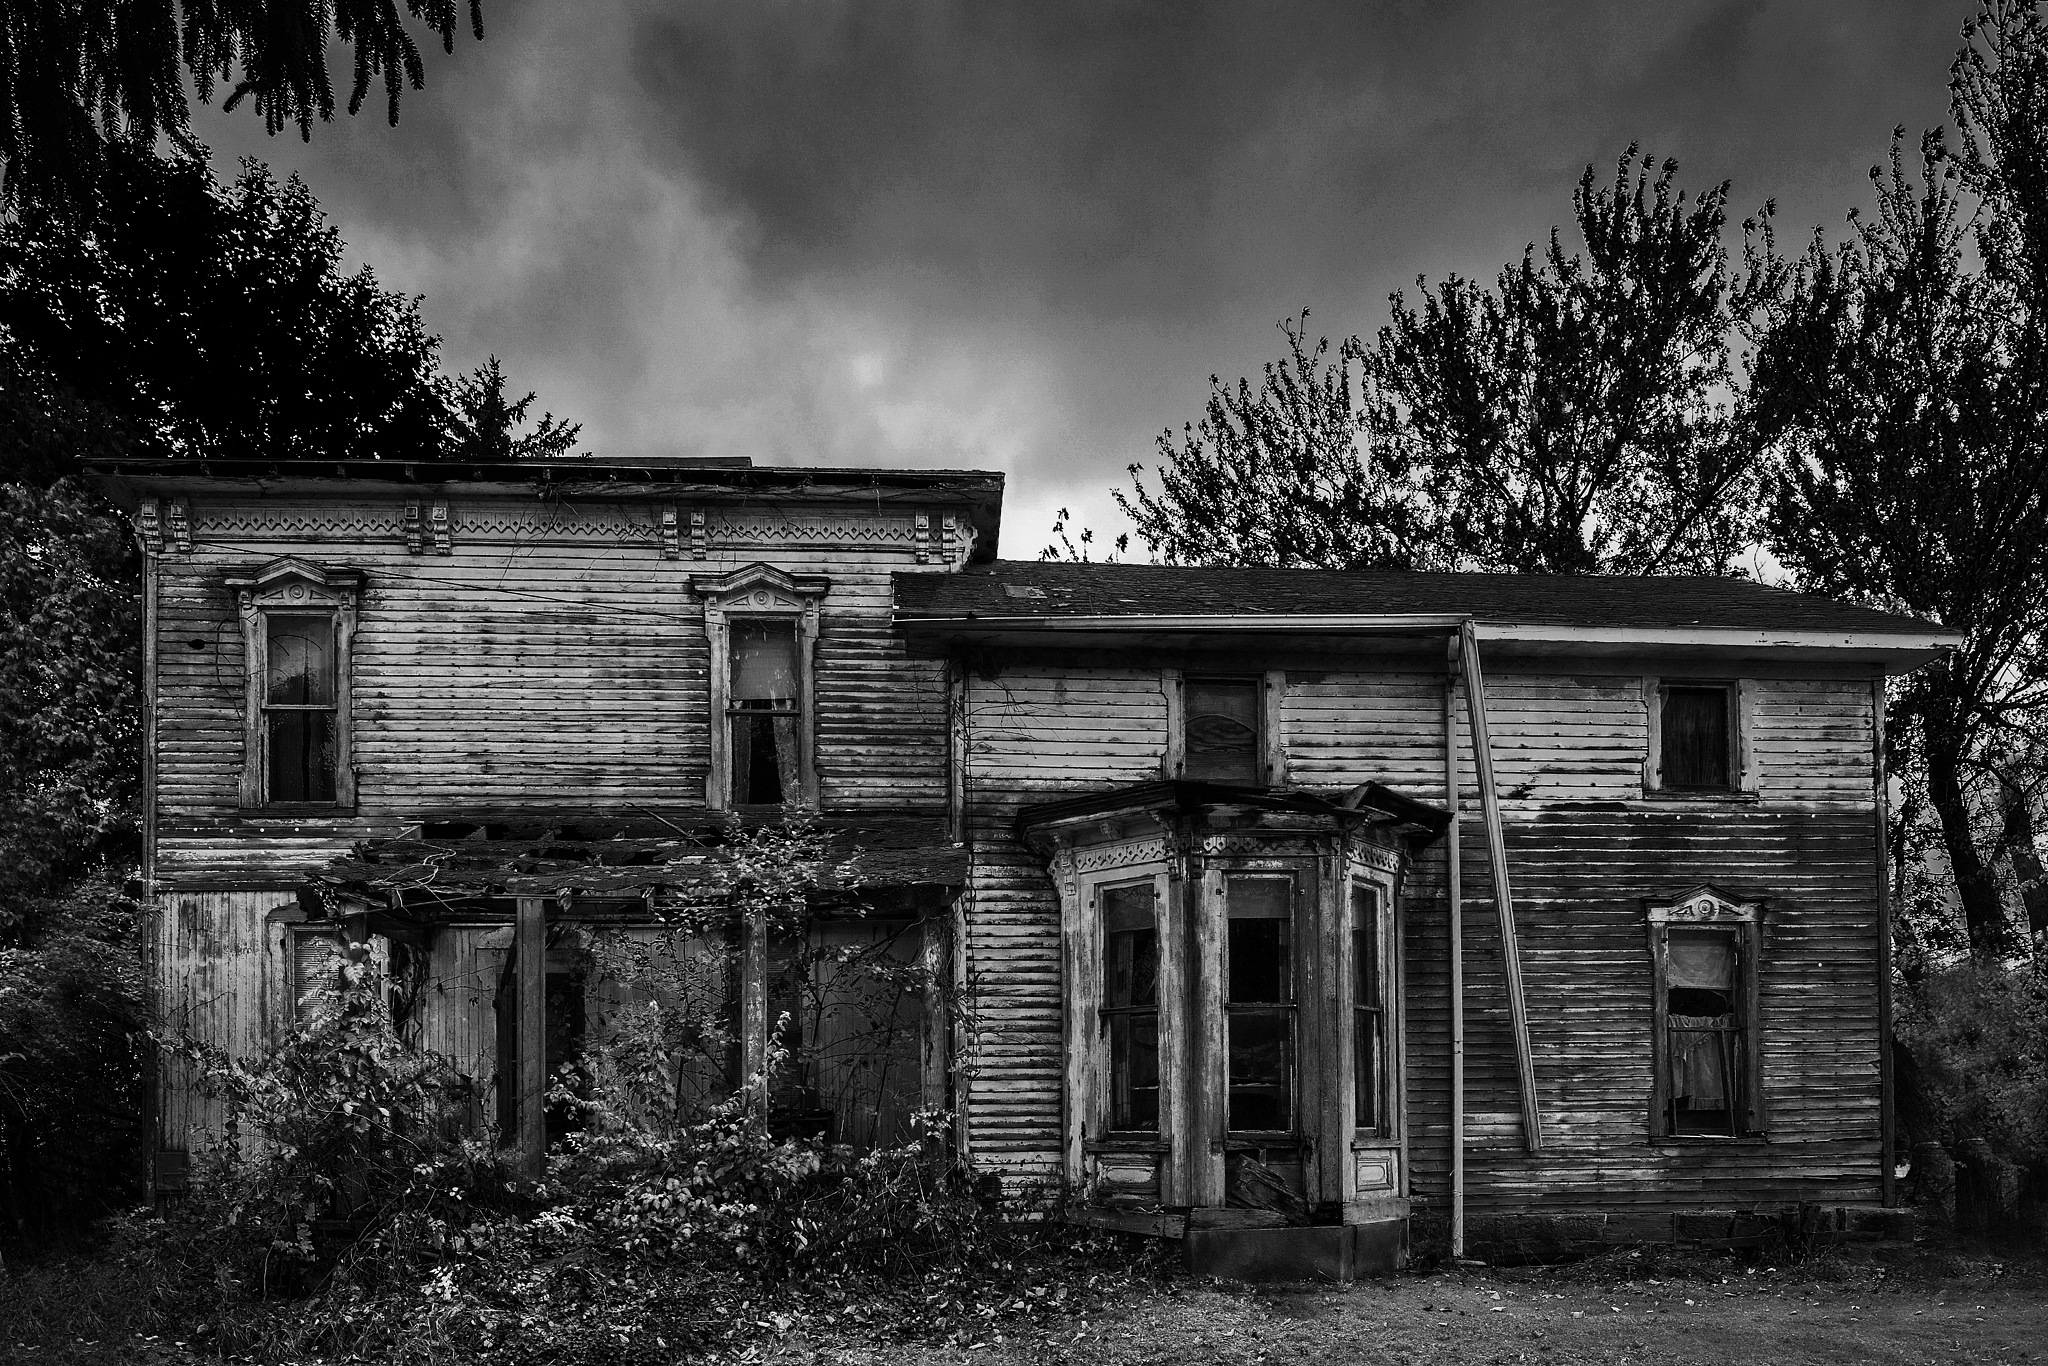 Hallowed Abandoned House in Northern Ohio by Walter Novak